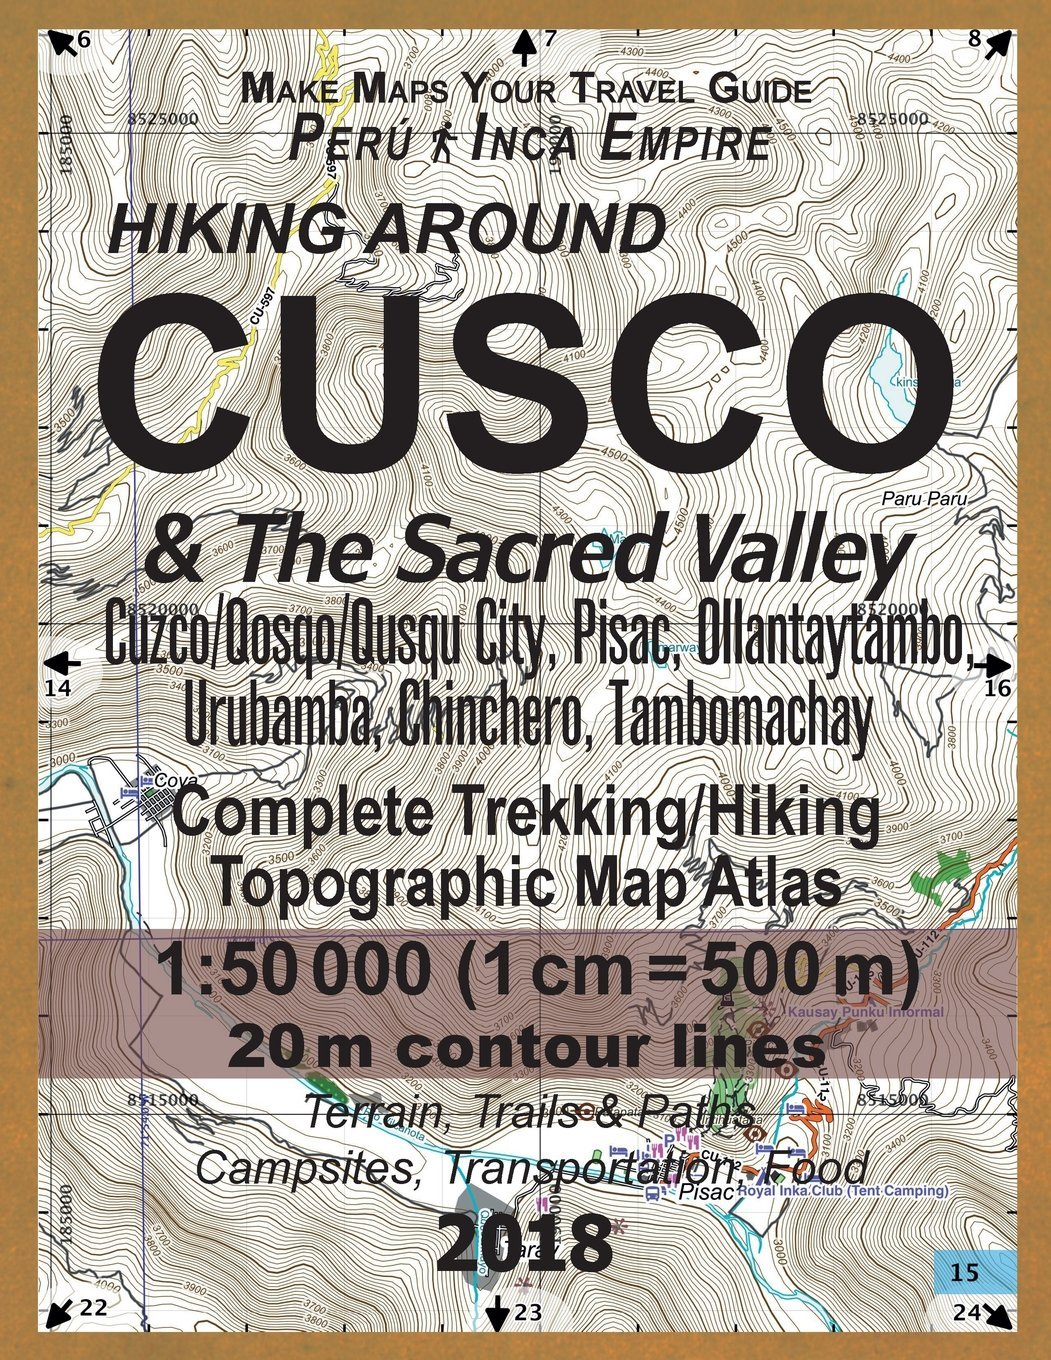 Hiking Around Cusco & The Sacred Valley Peru Inca Empire Complete Trekking/Hiking/Walking Topographic Map Atlas Cuzco/Qosqo/Qusqu City, Pisac, ... Map